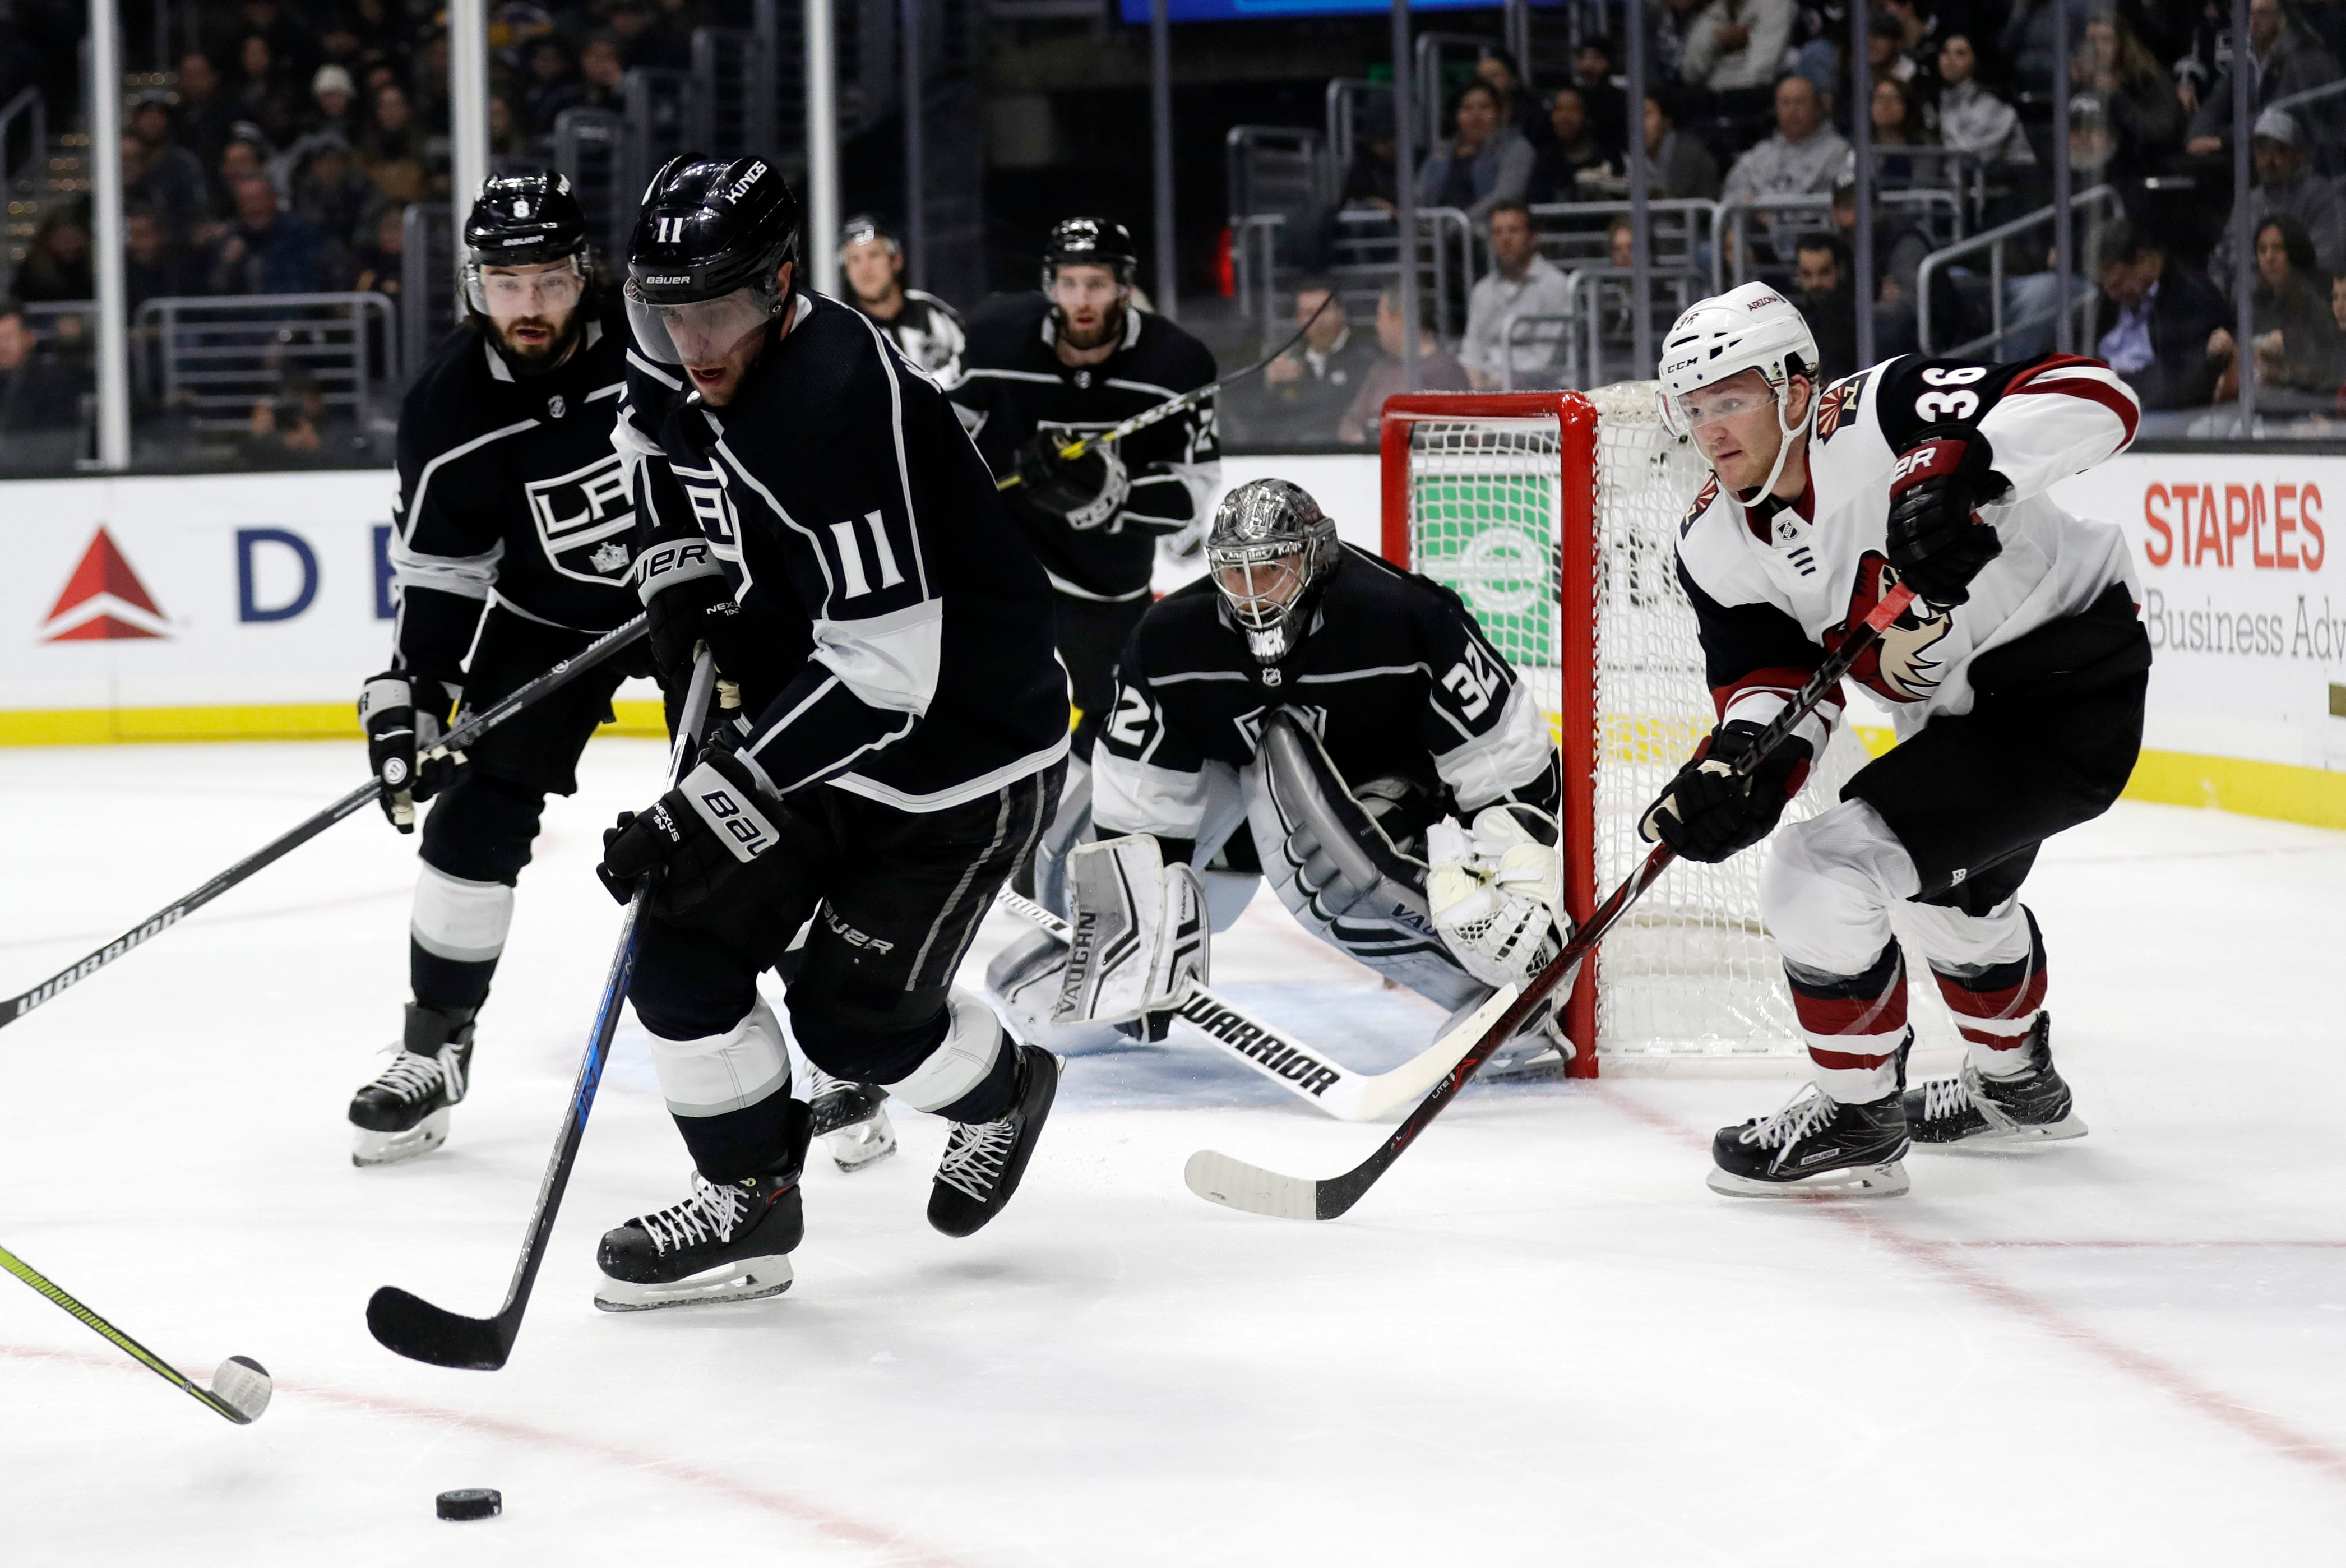 Hill shines again as Coyotes beat Kings 2-1 for 4th straight